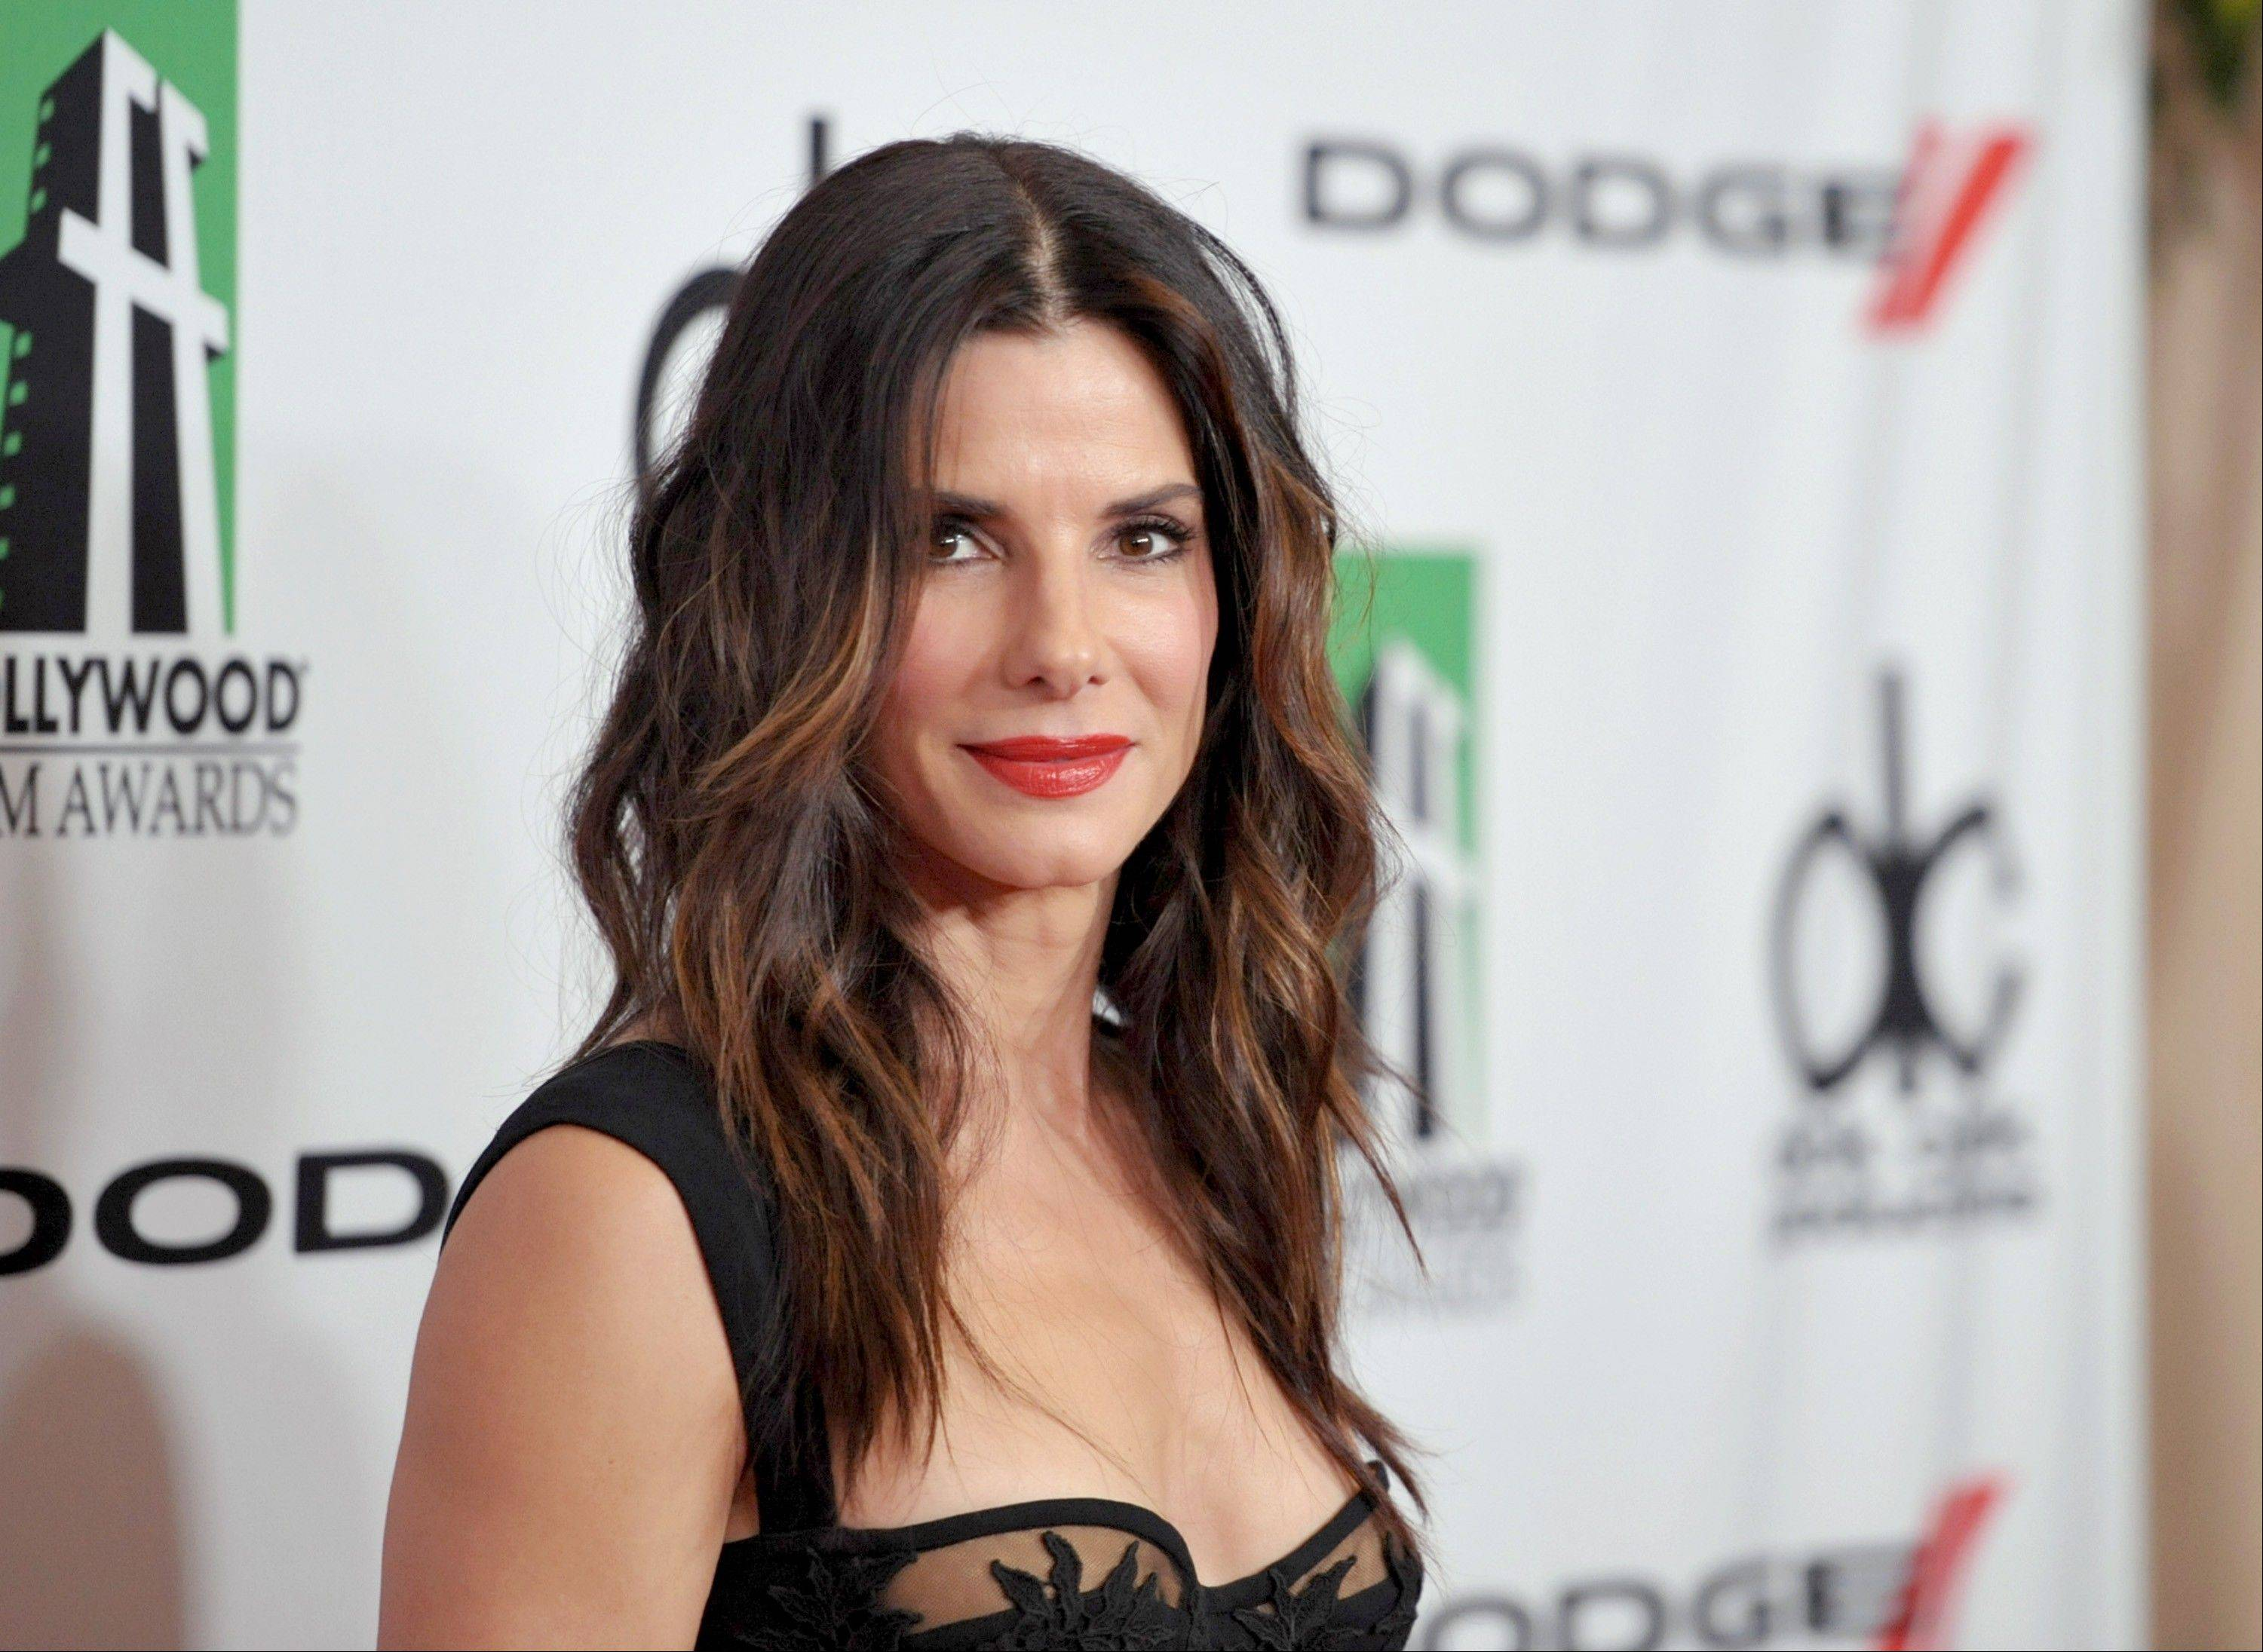 Sandra Bullock scored five nominations for the People's Choice Awards airing on CBS on Wednesday.